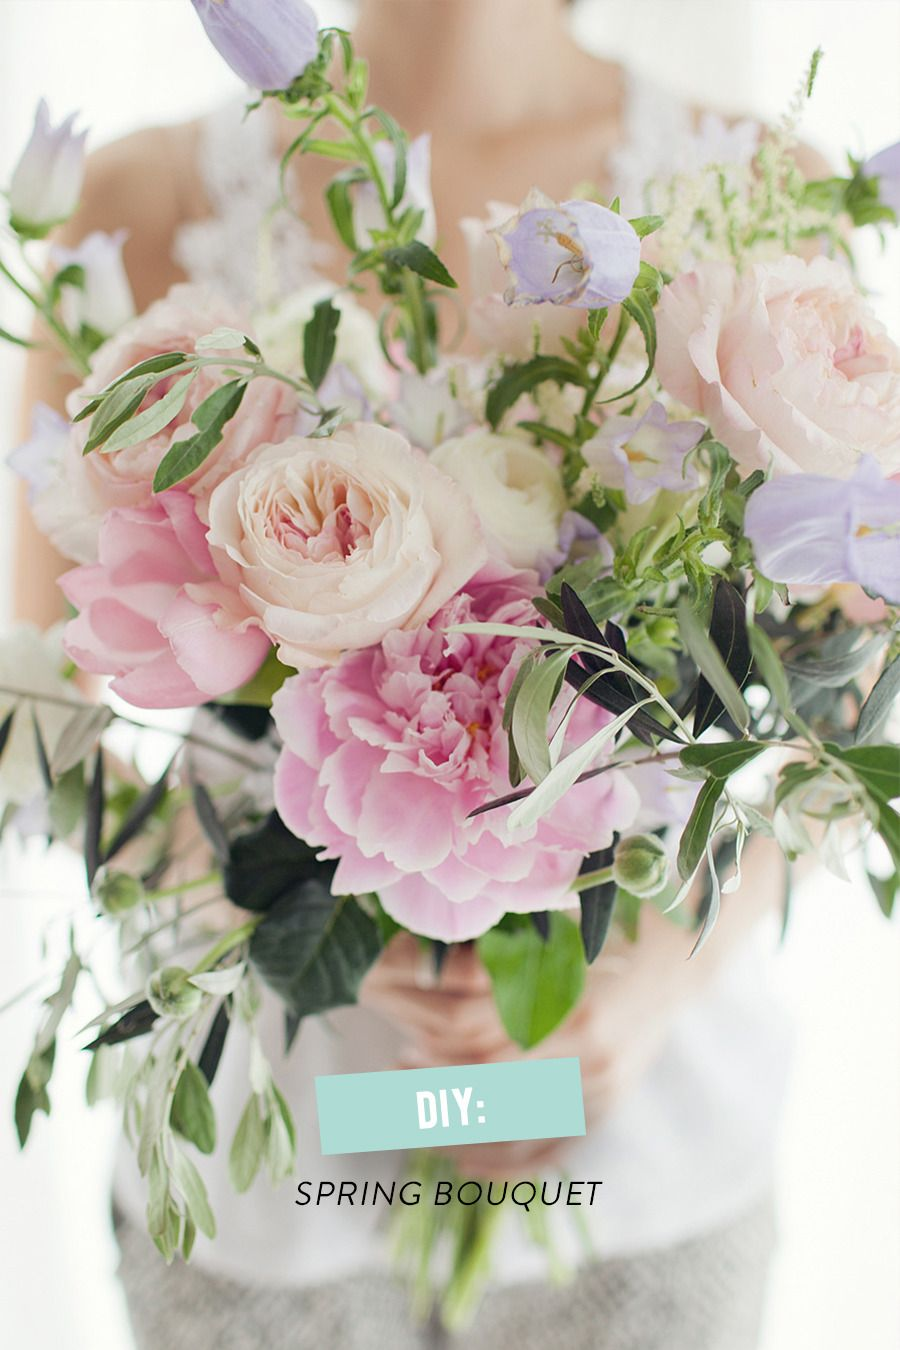 Diy Spring Bouquet Bouquet Photography Spring And Flowers